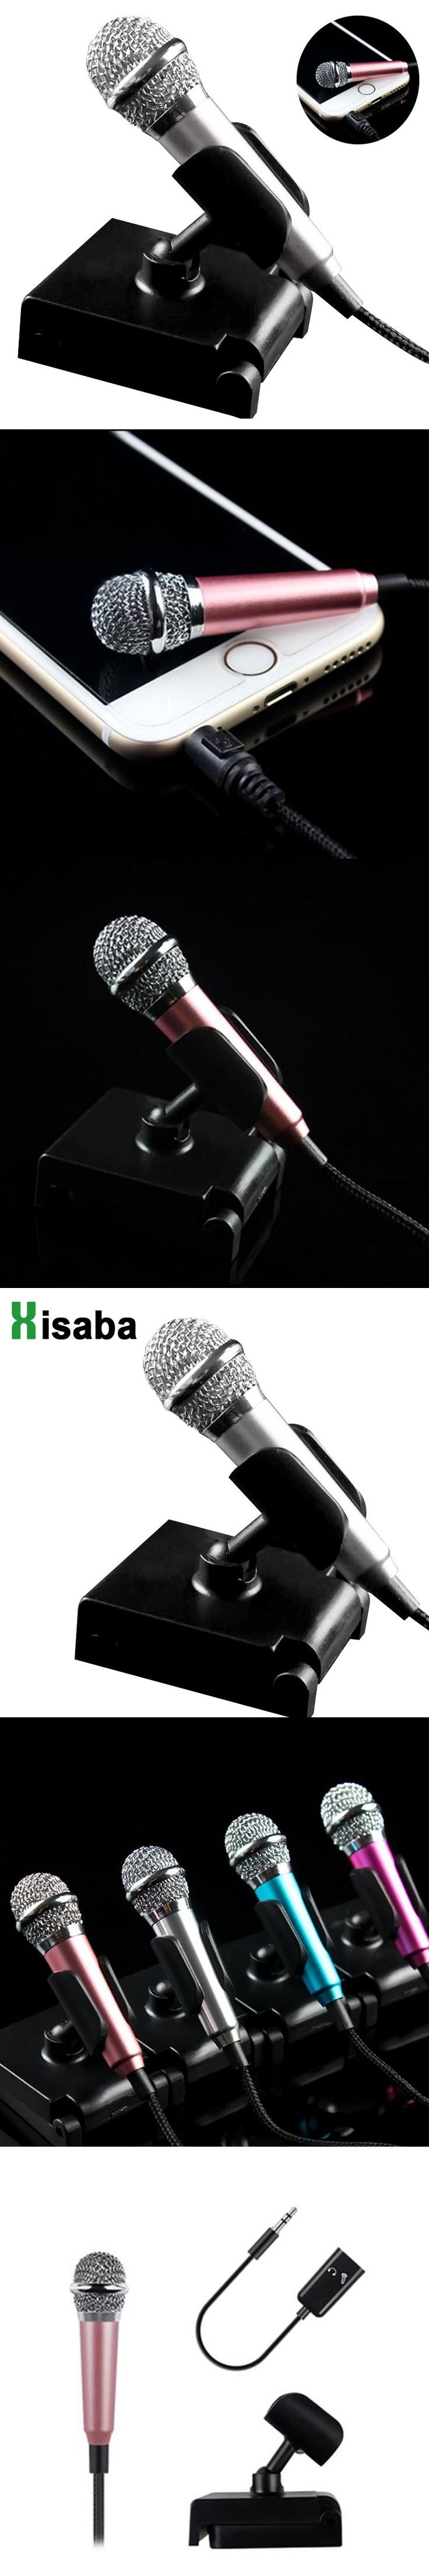 Portable Mini Microphone Stereo Condenser Mic 3 5mm For iPhone 6 6s IOS Android phone PC